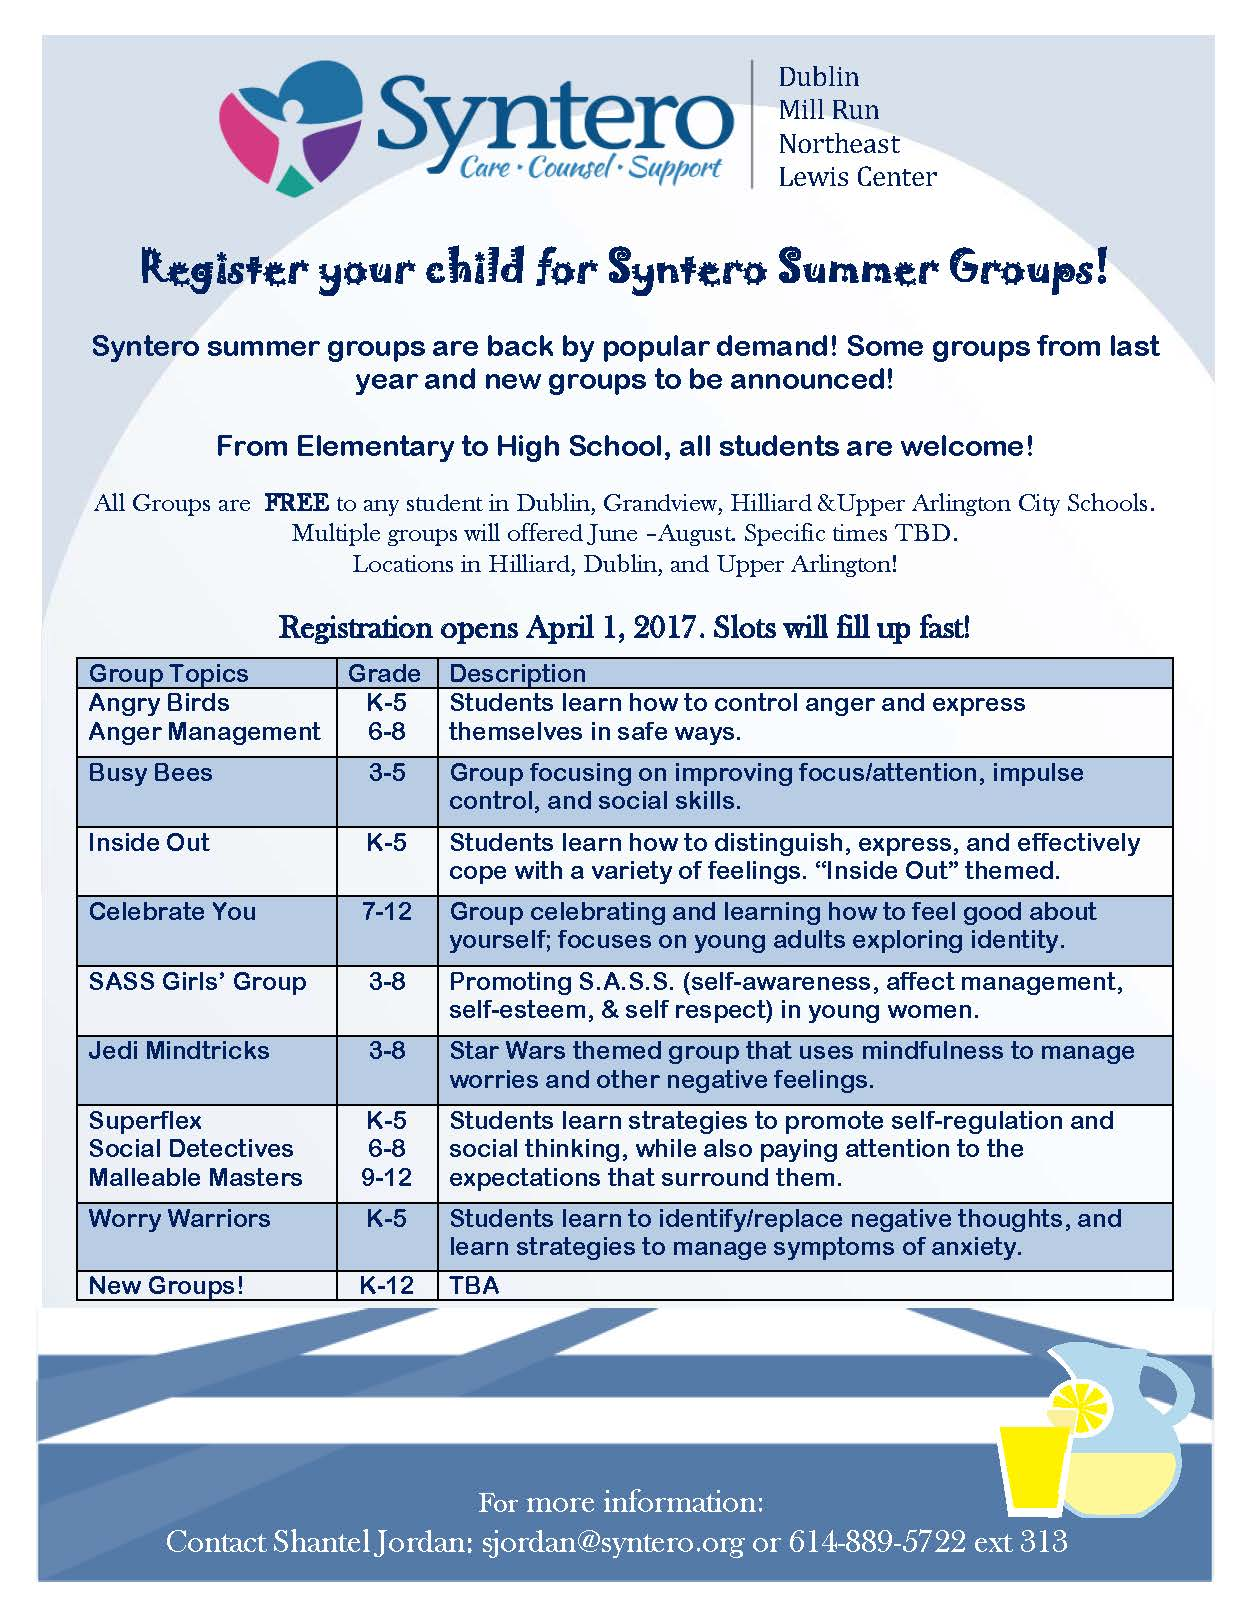 Online registration will open April 1, 2017. Please check back for updates  on these wonderful group programs. Download our flyer here.